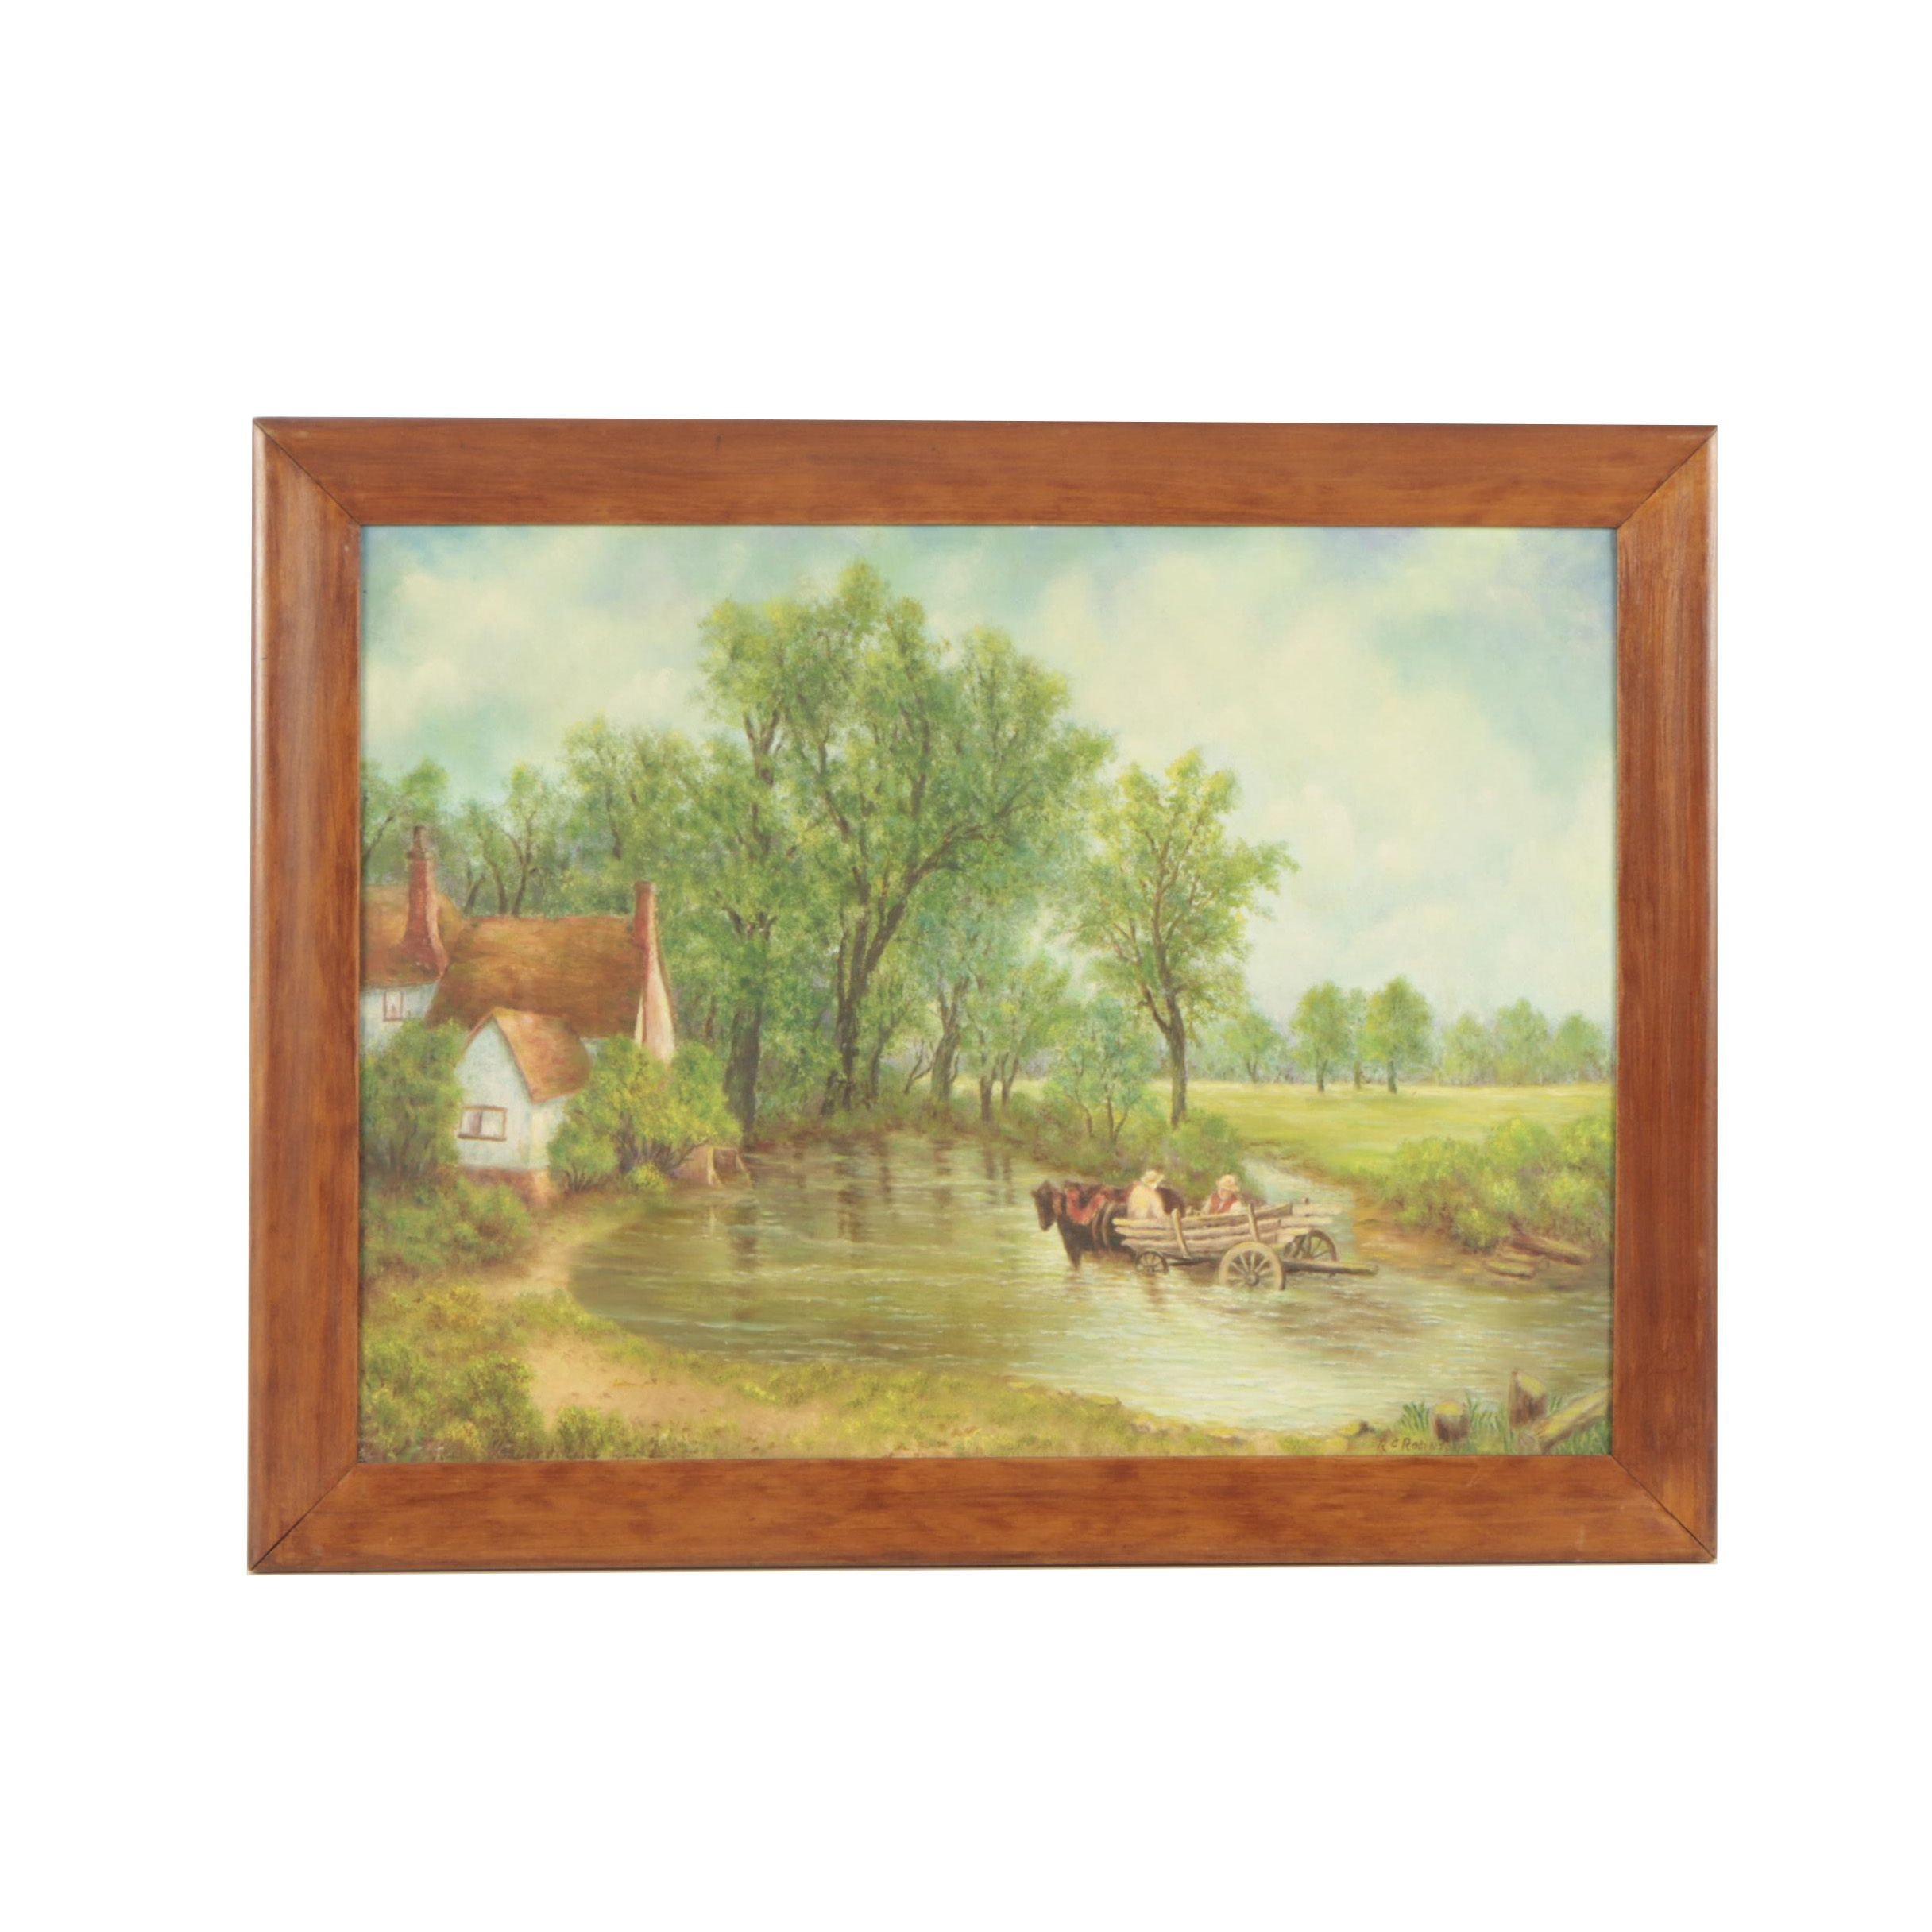 R. C. Robinson Oil Painting of a Pastoral Scene